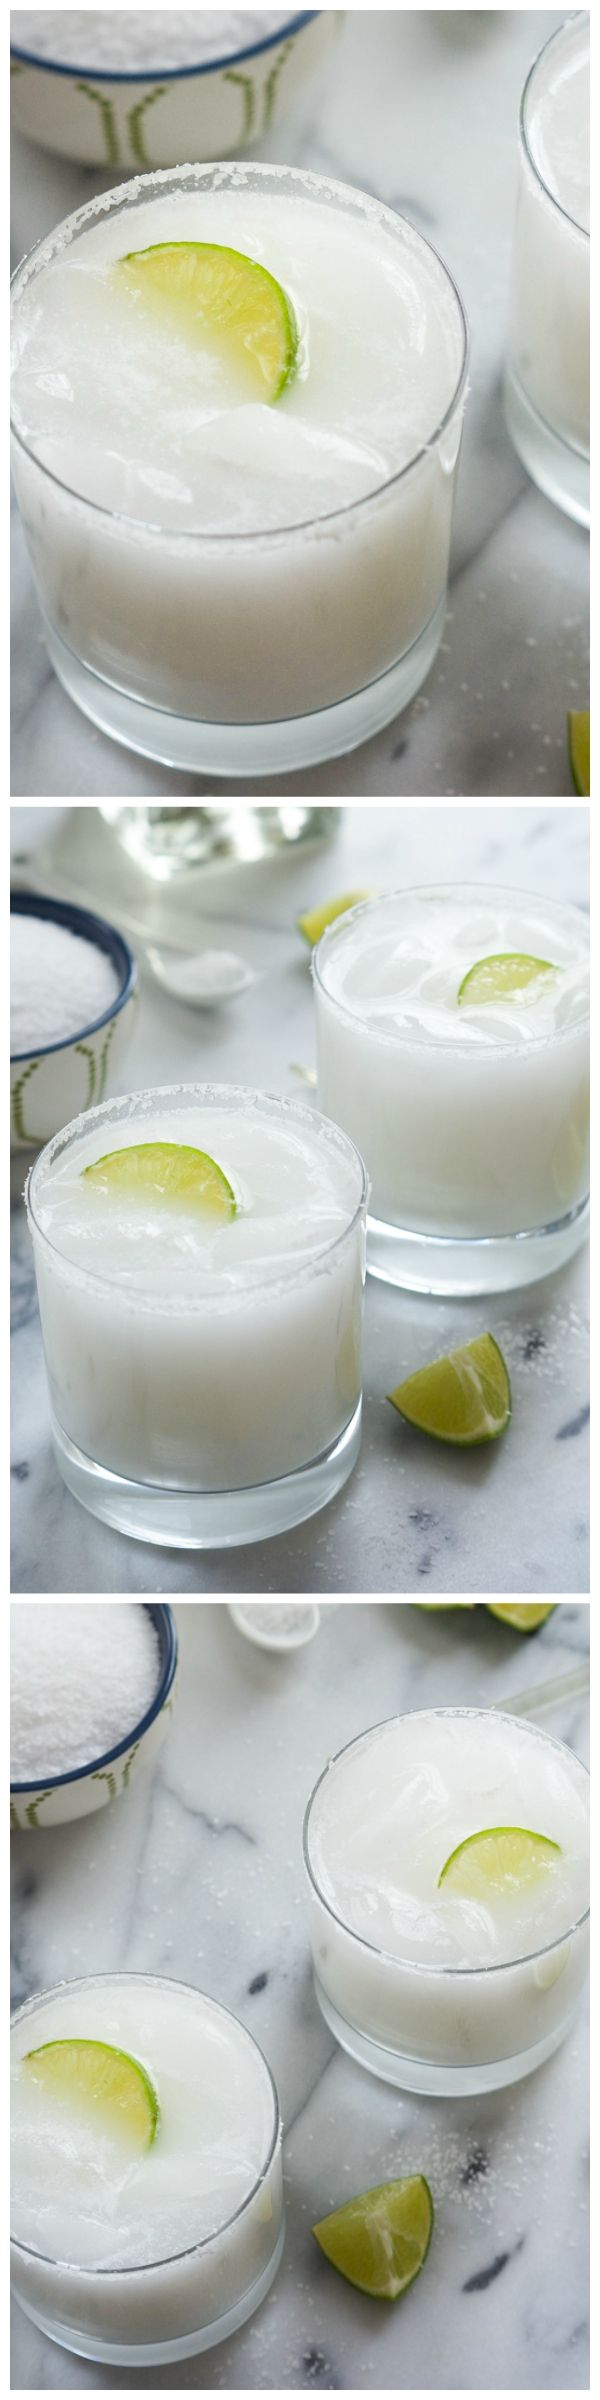 These Skinny Coconut Margarita are made with lite coconut milk, coconut water, tequila blanco and triple sec for a refreshing cocktail!